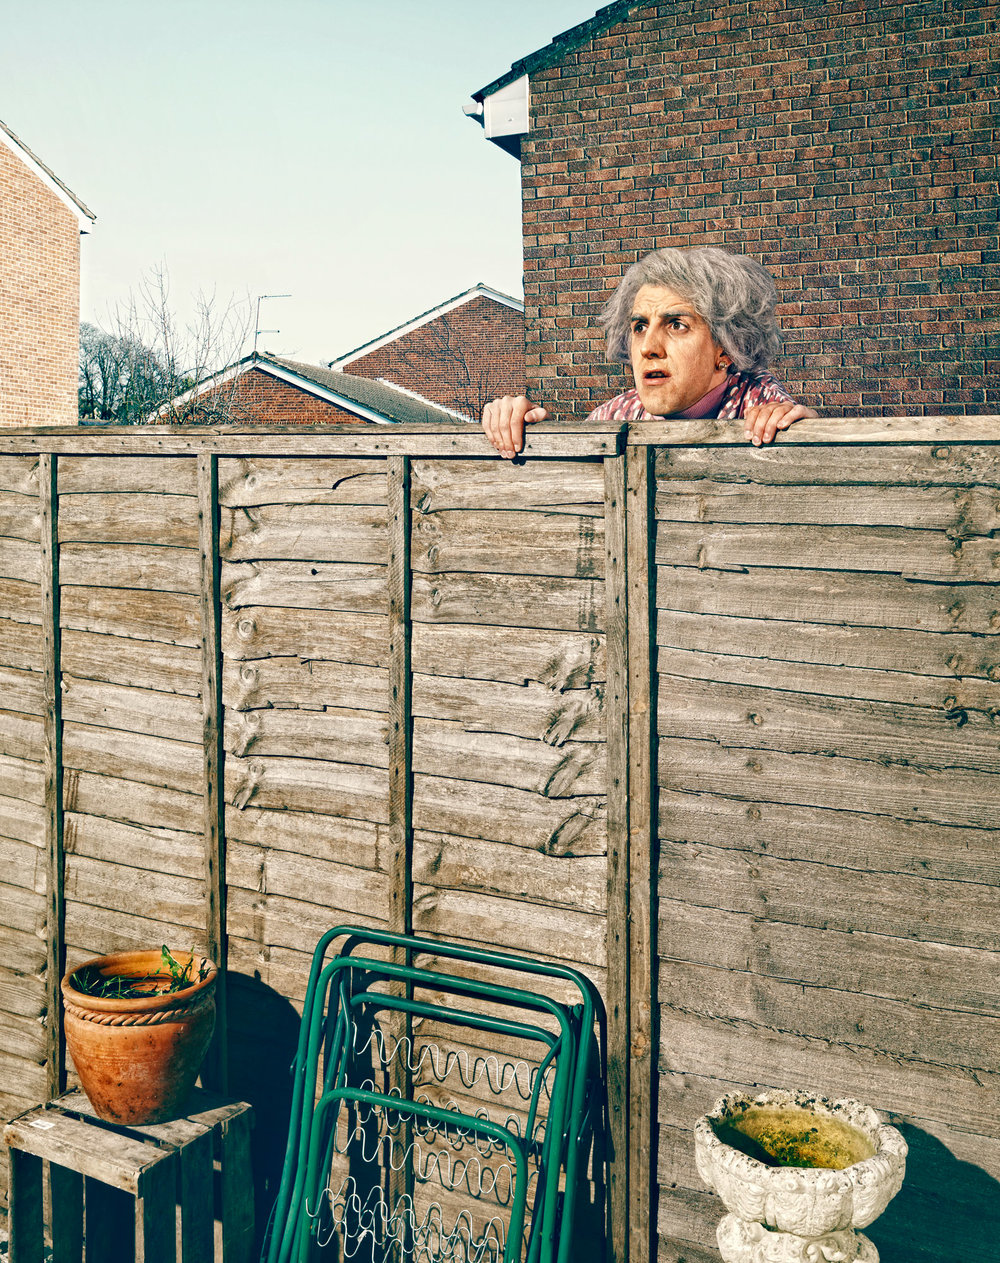 111215_findaproperty_fence_RT2a.jpg